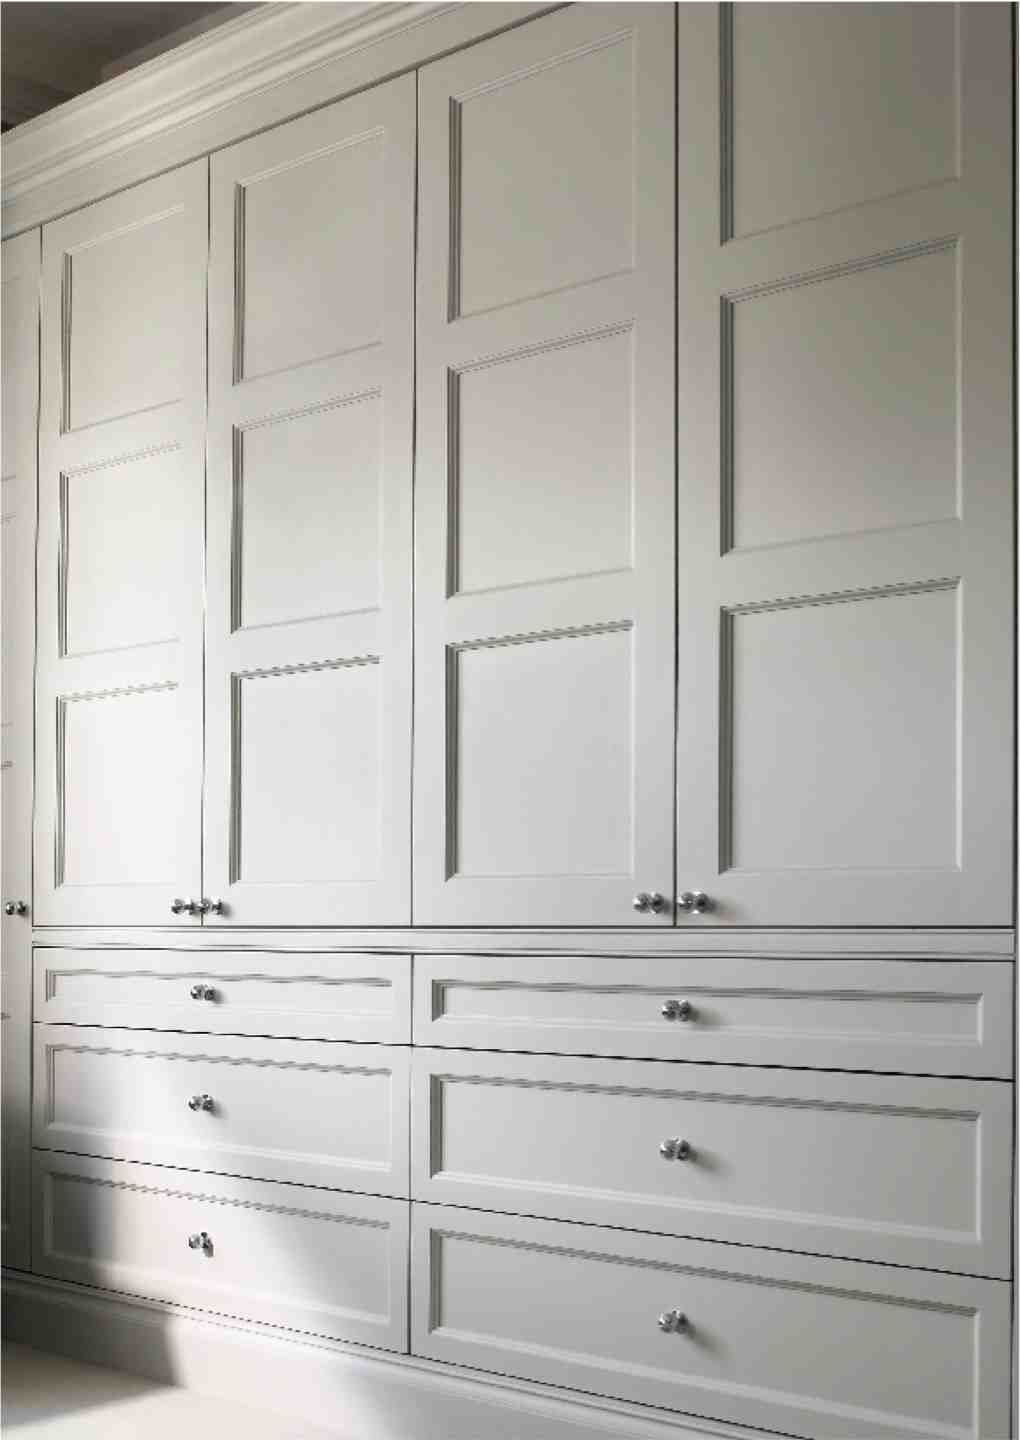 Bedroom Built In Closets Edwardian Wardrobe Doors For Built In Wardrobe Dressing Room